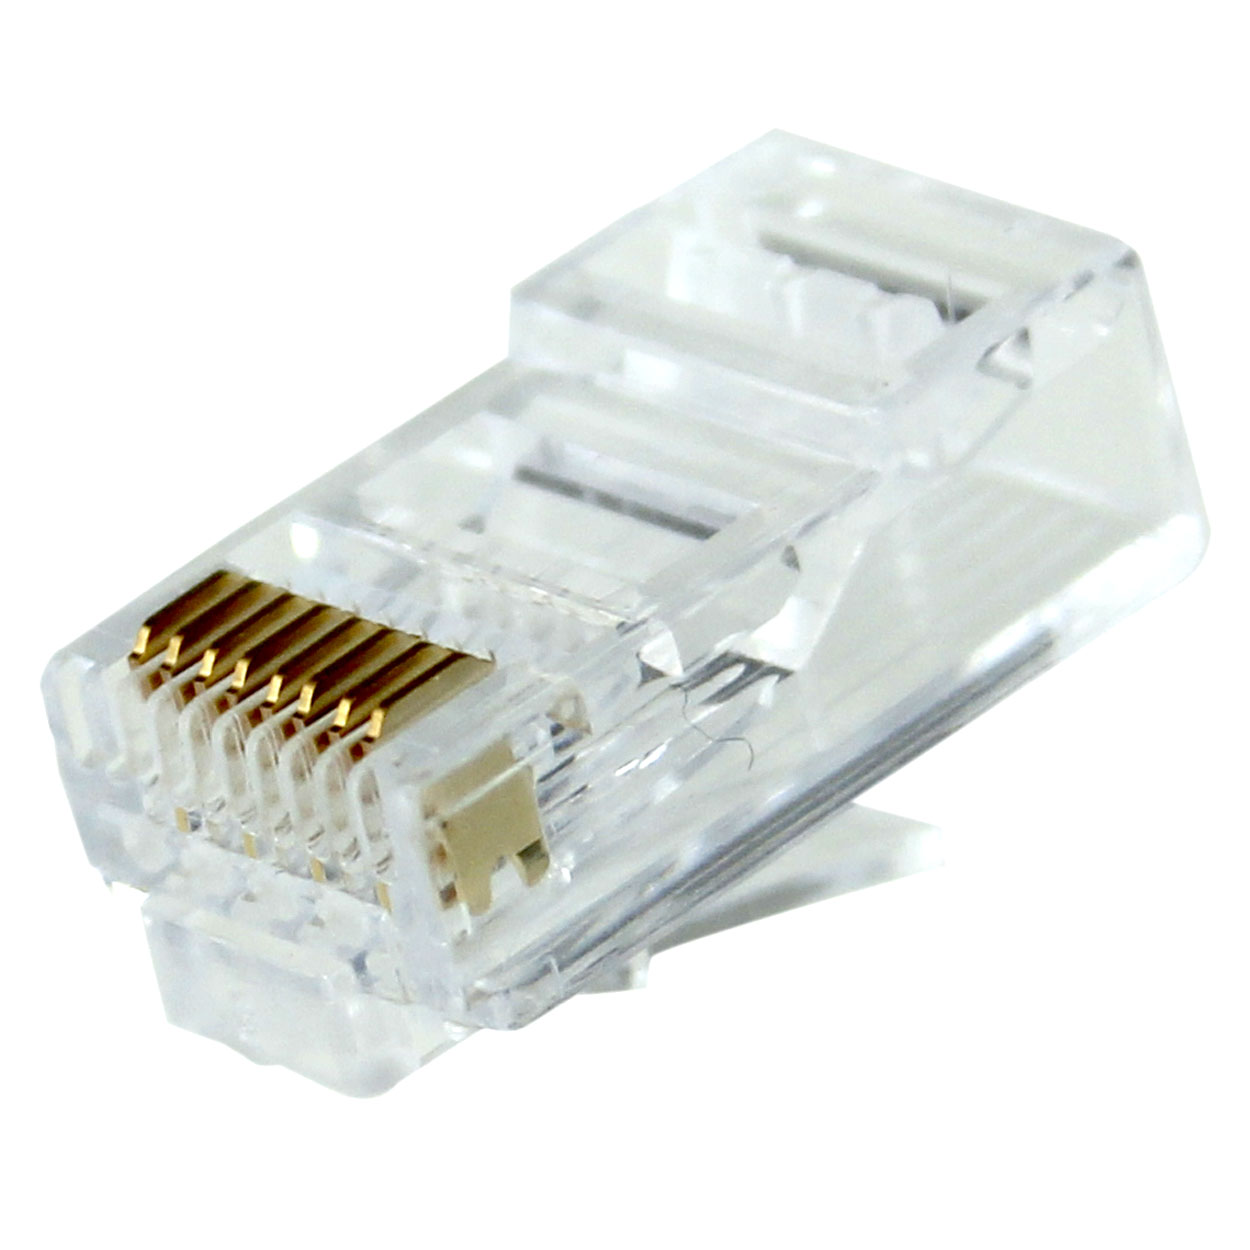 hight resolution of rj45 cat6 long body modular plug for round solid or stranded wire cable 50pcs bag pi manufacturing